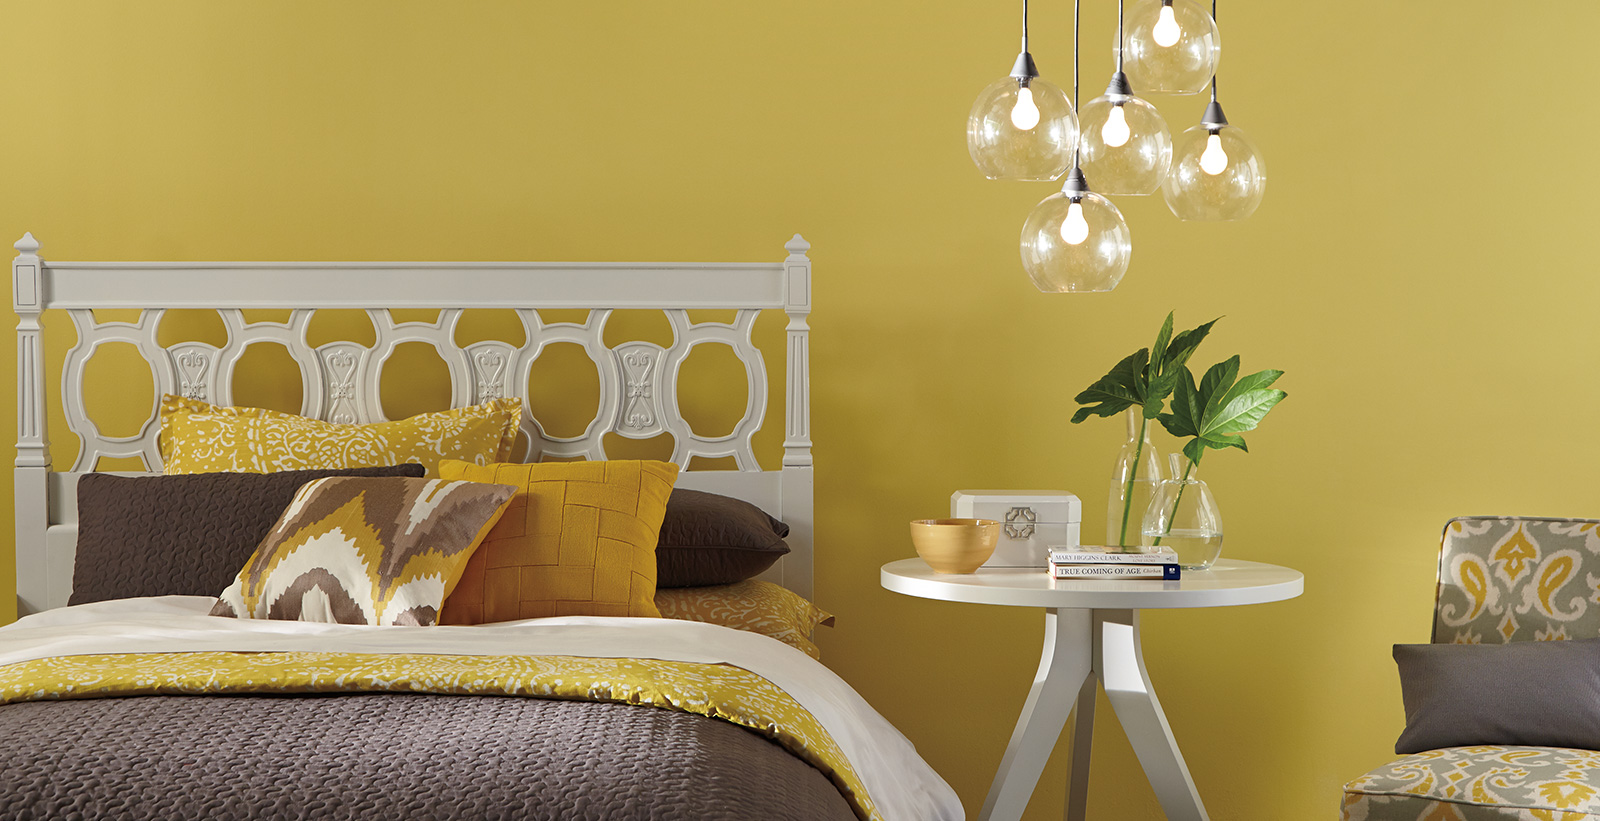 Bright bedroom with yellow on walls, white geometric cutout headboard and hanging globe lights